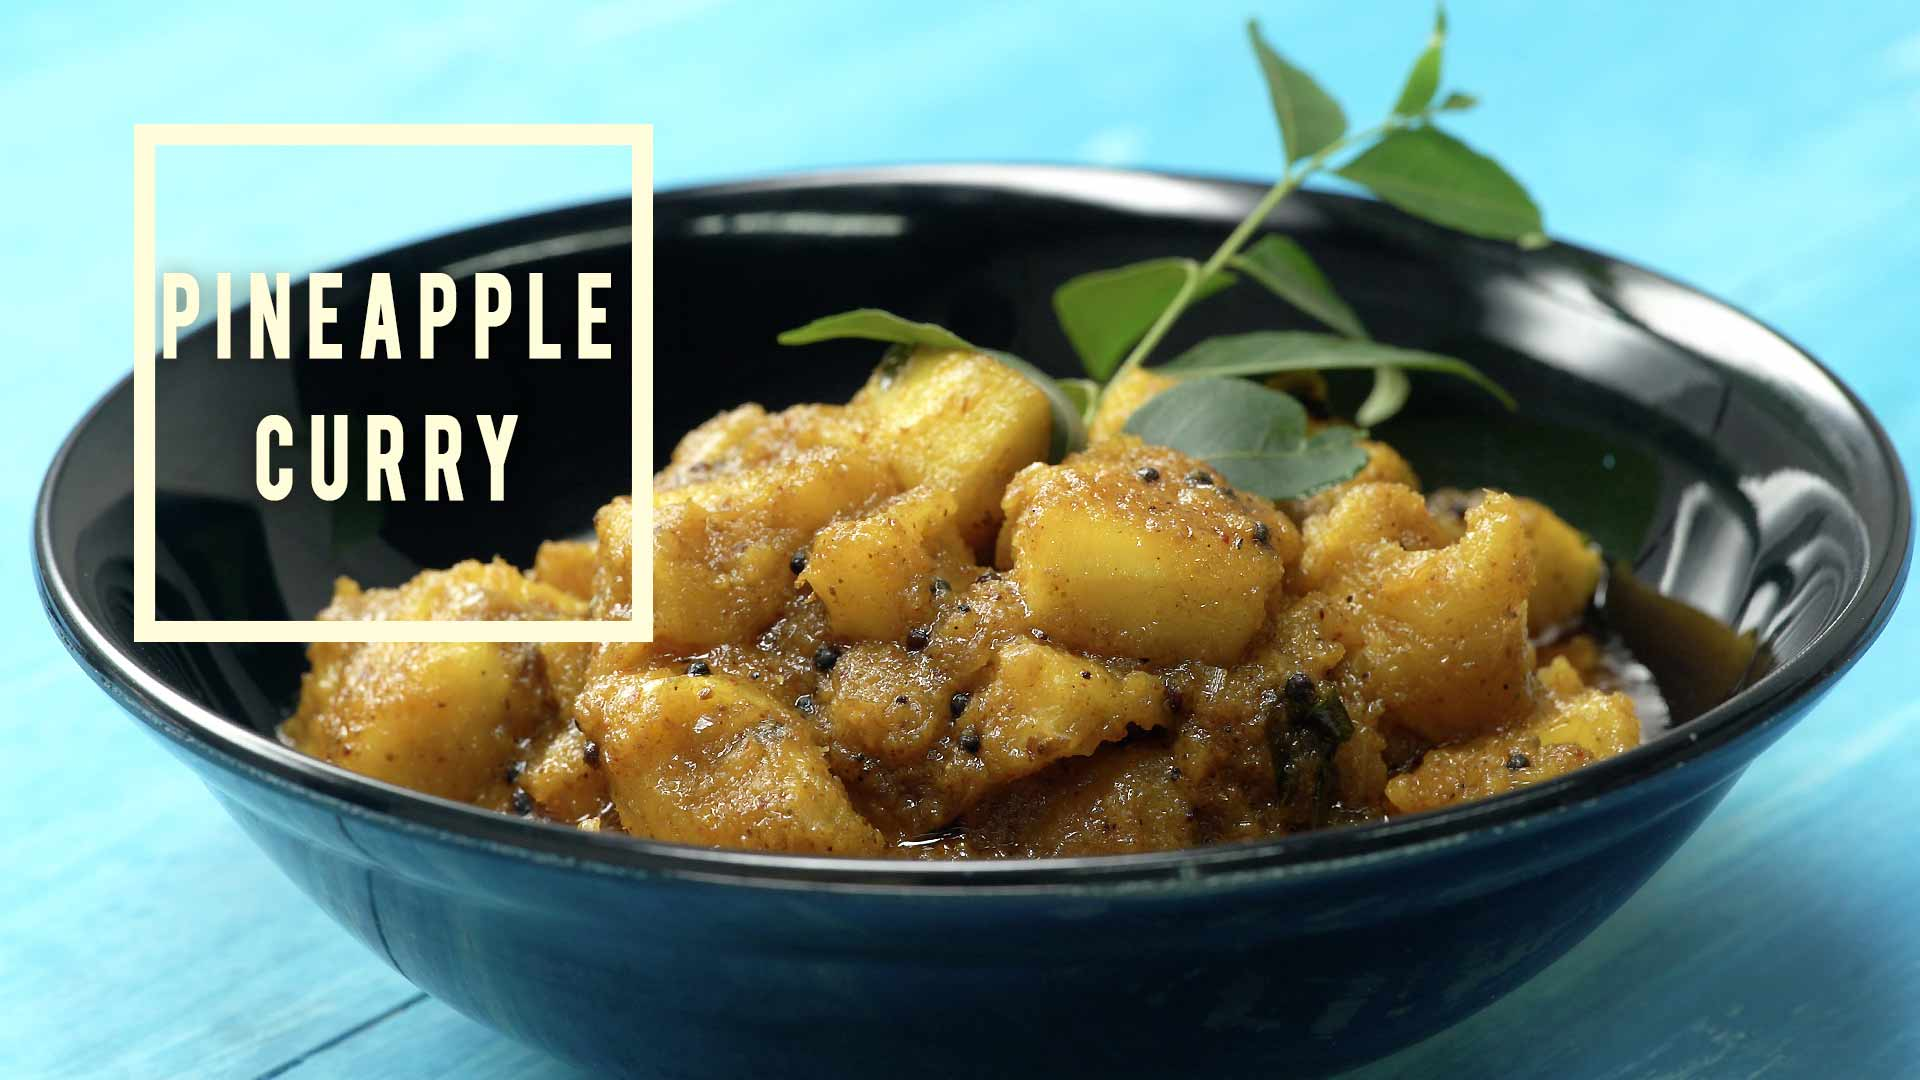 Let this Hot and Spicy Pineapple Curry amaze you!